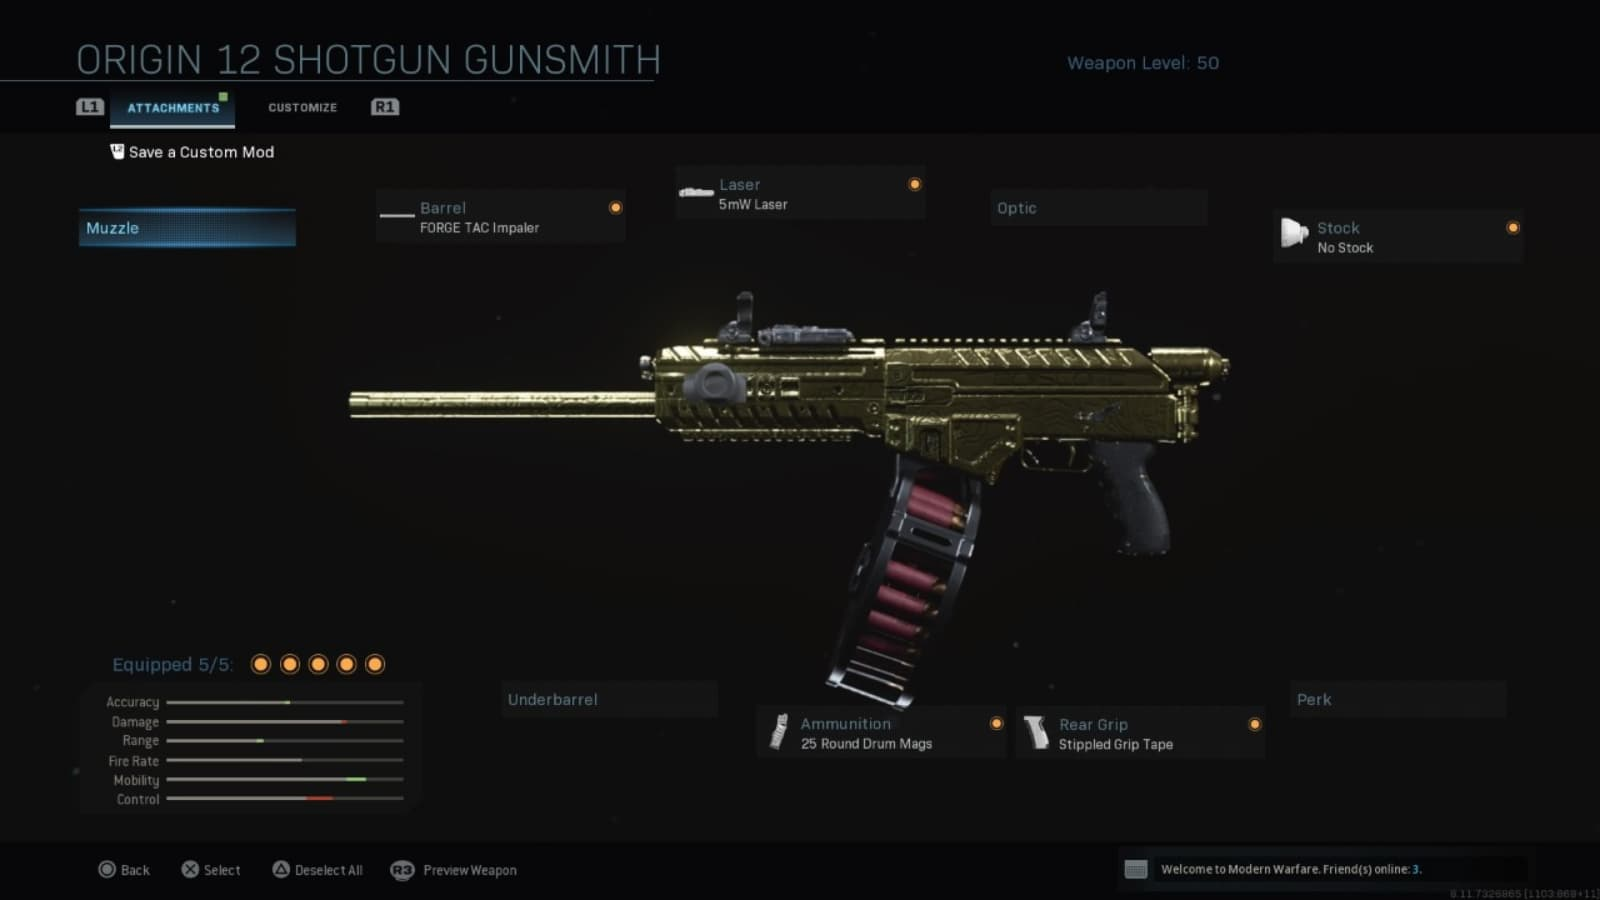 The Best ORIGIN 12 Warzone Loadout with Details